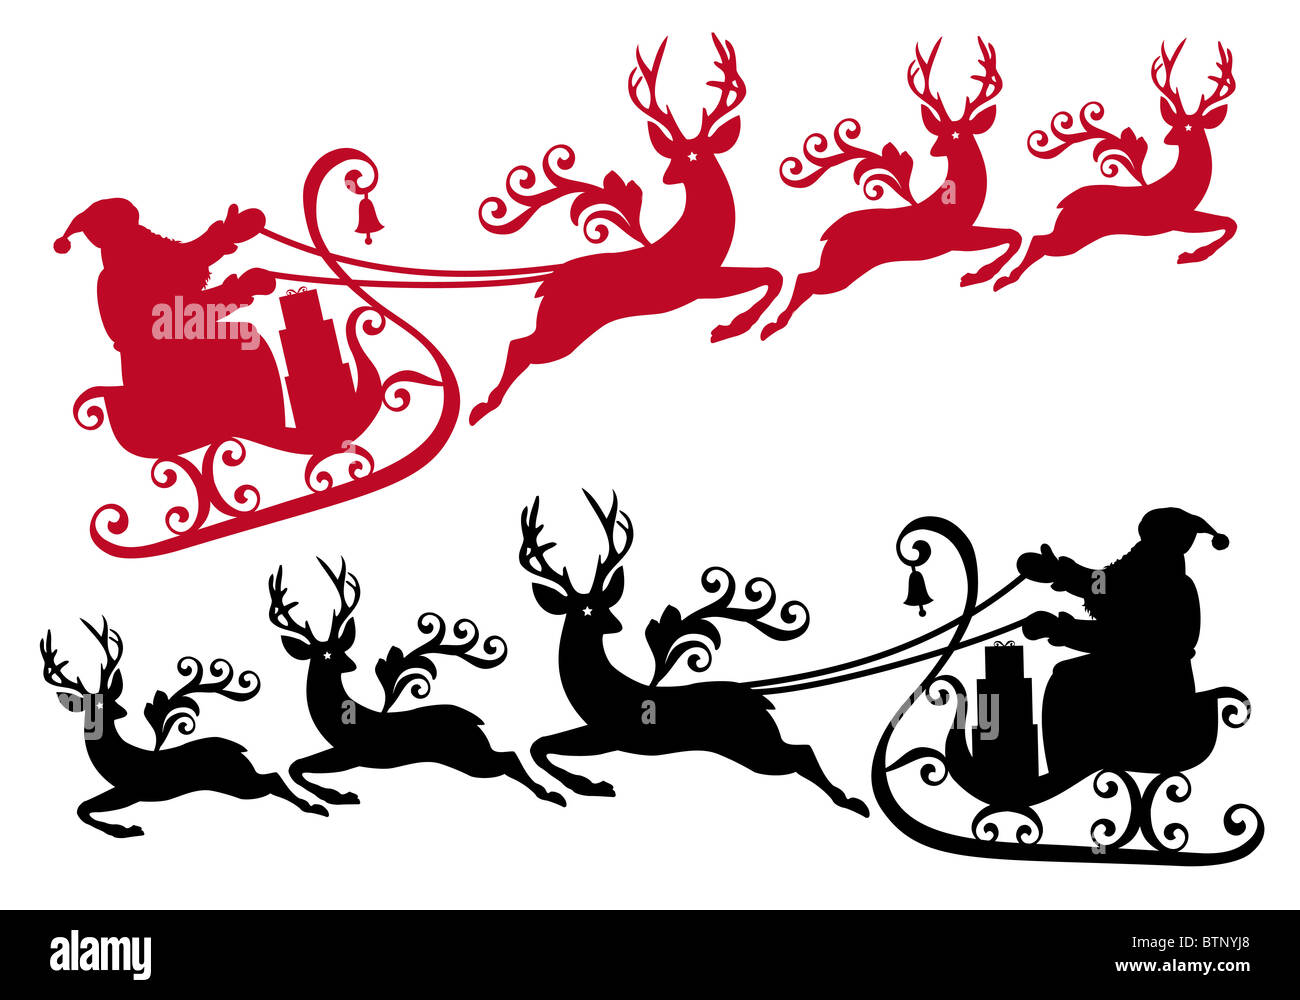 santa with his sleigh and reindeer, christmas background - Stock Image